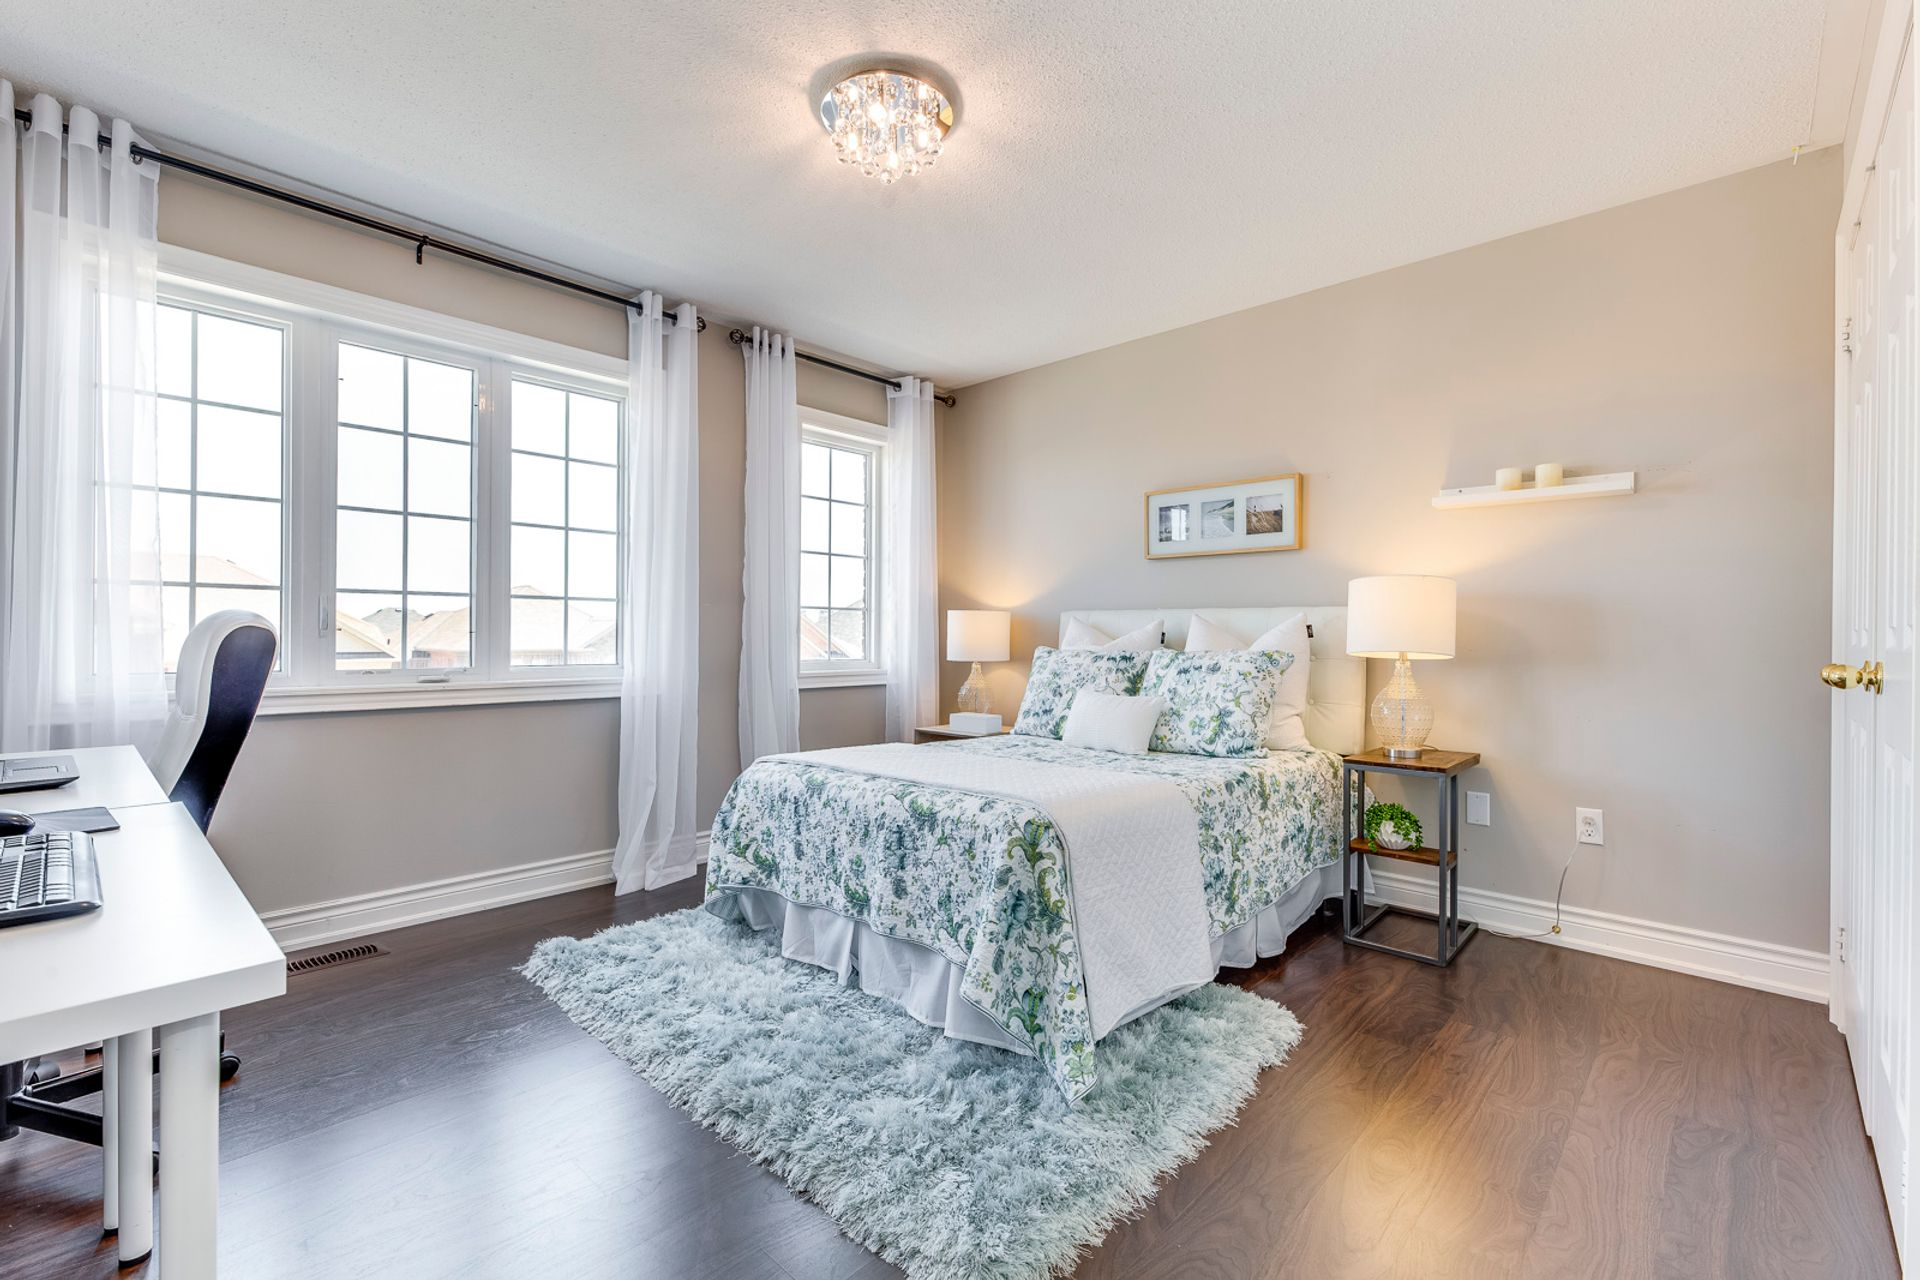 mls-48 at 5480 Meadowcrest Avenue, Churchill Meadows, Mississauga